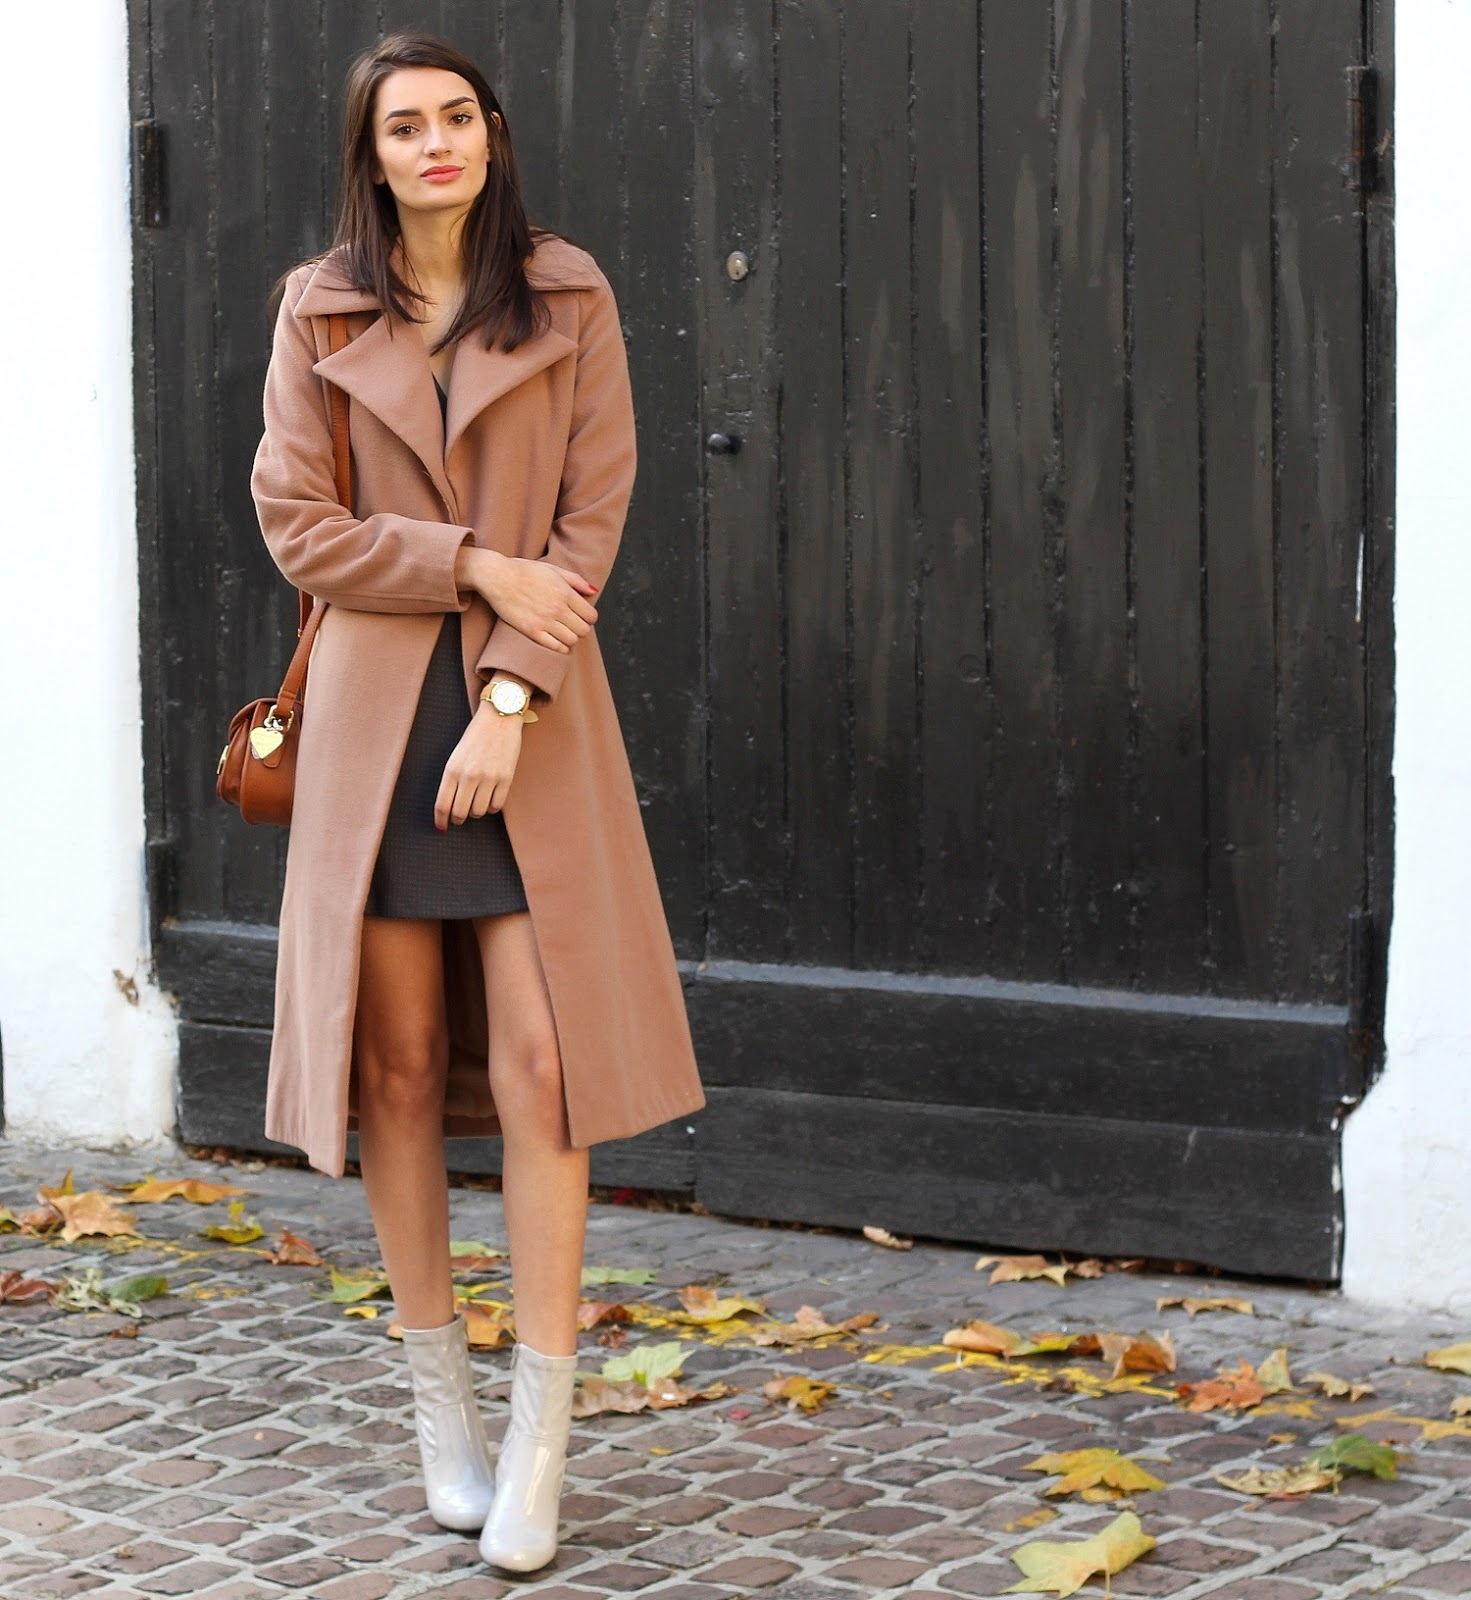 peexo fashion blogger wearing camel coat and patent boots